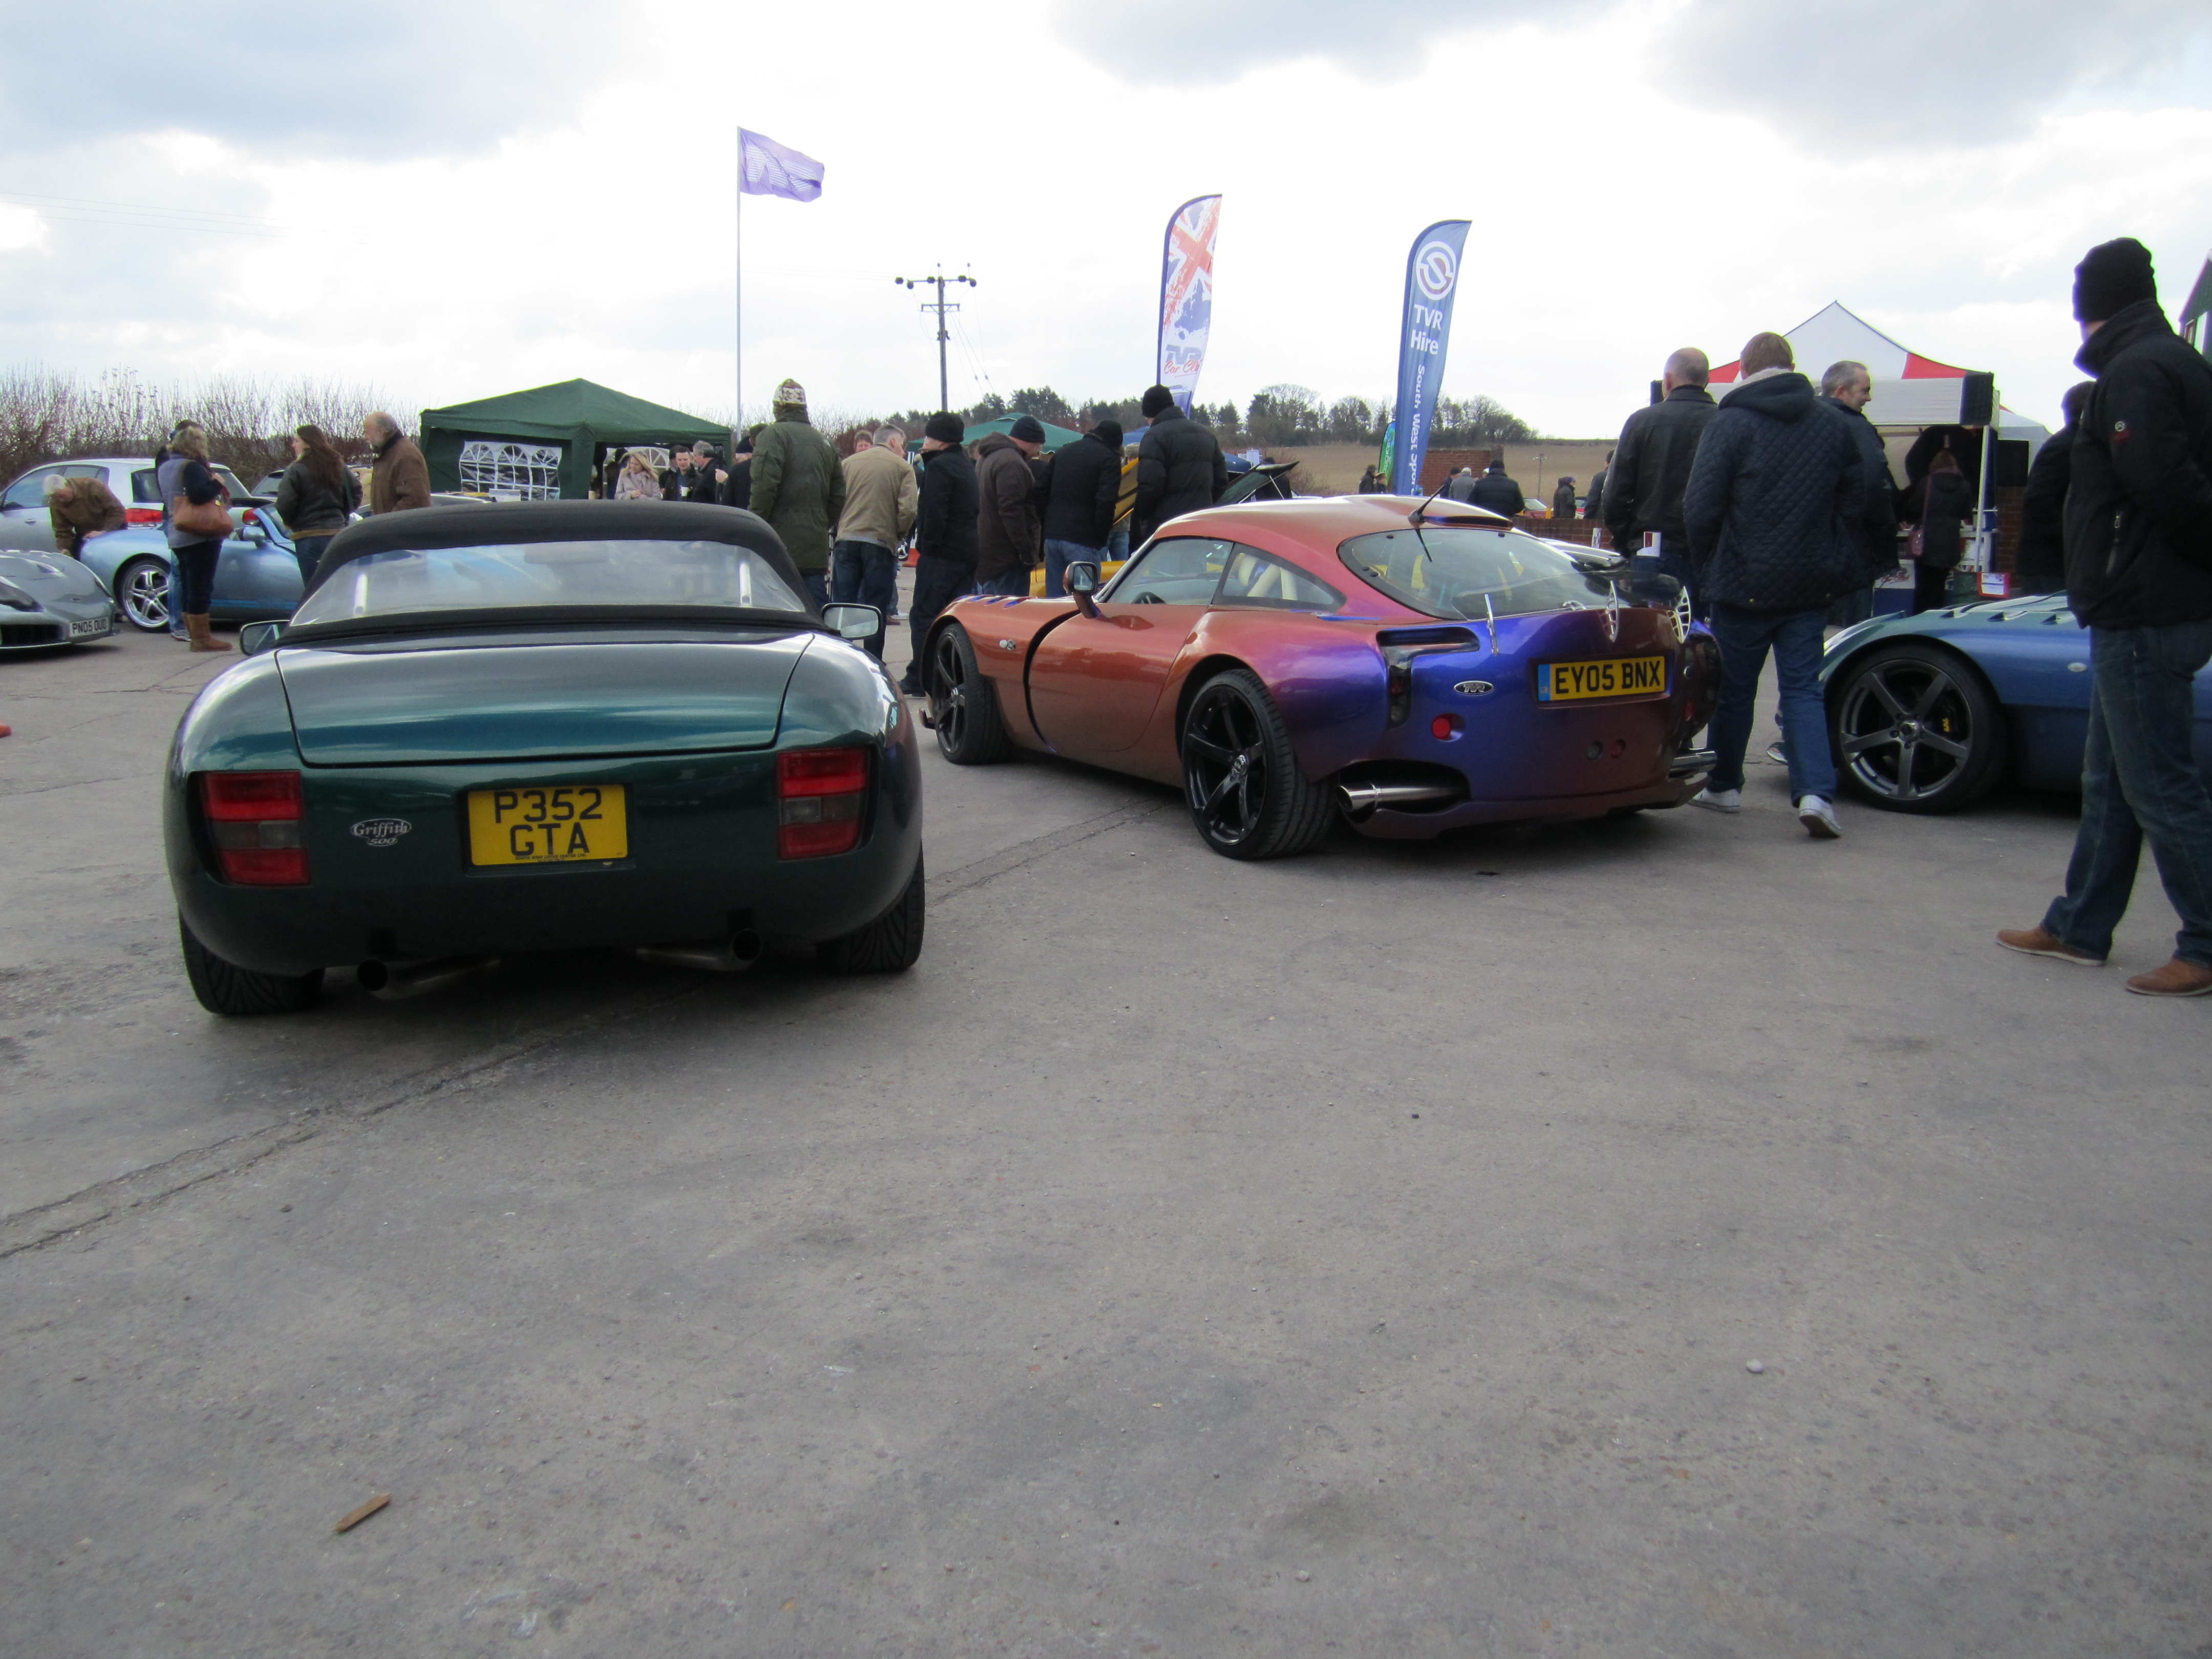 Green paint and Chameleon TVR's